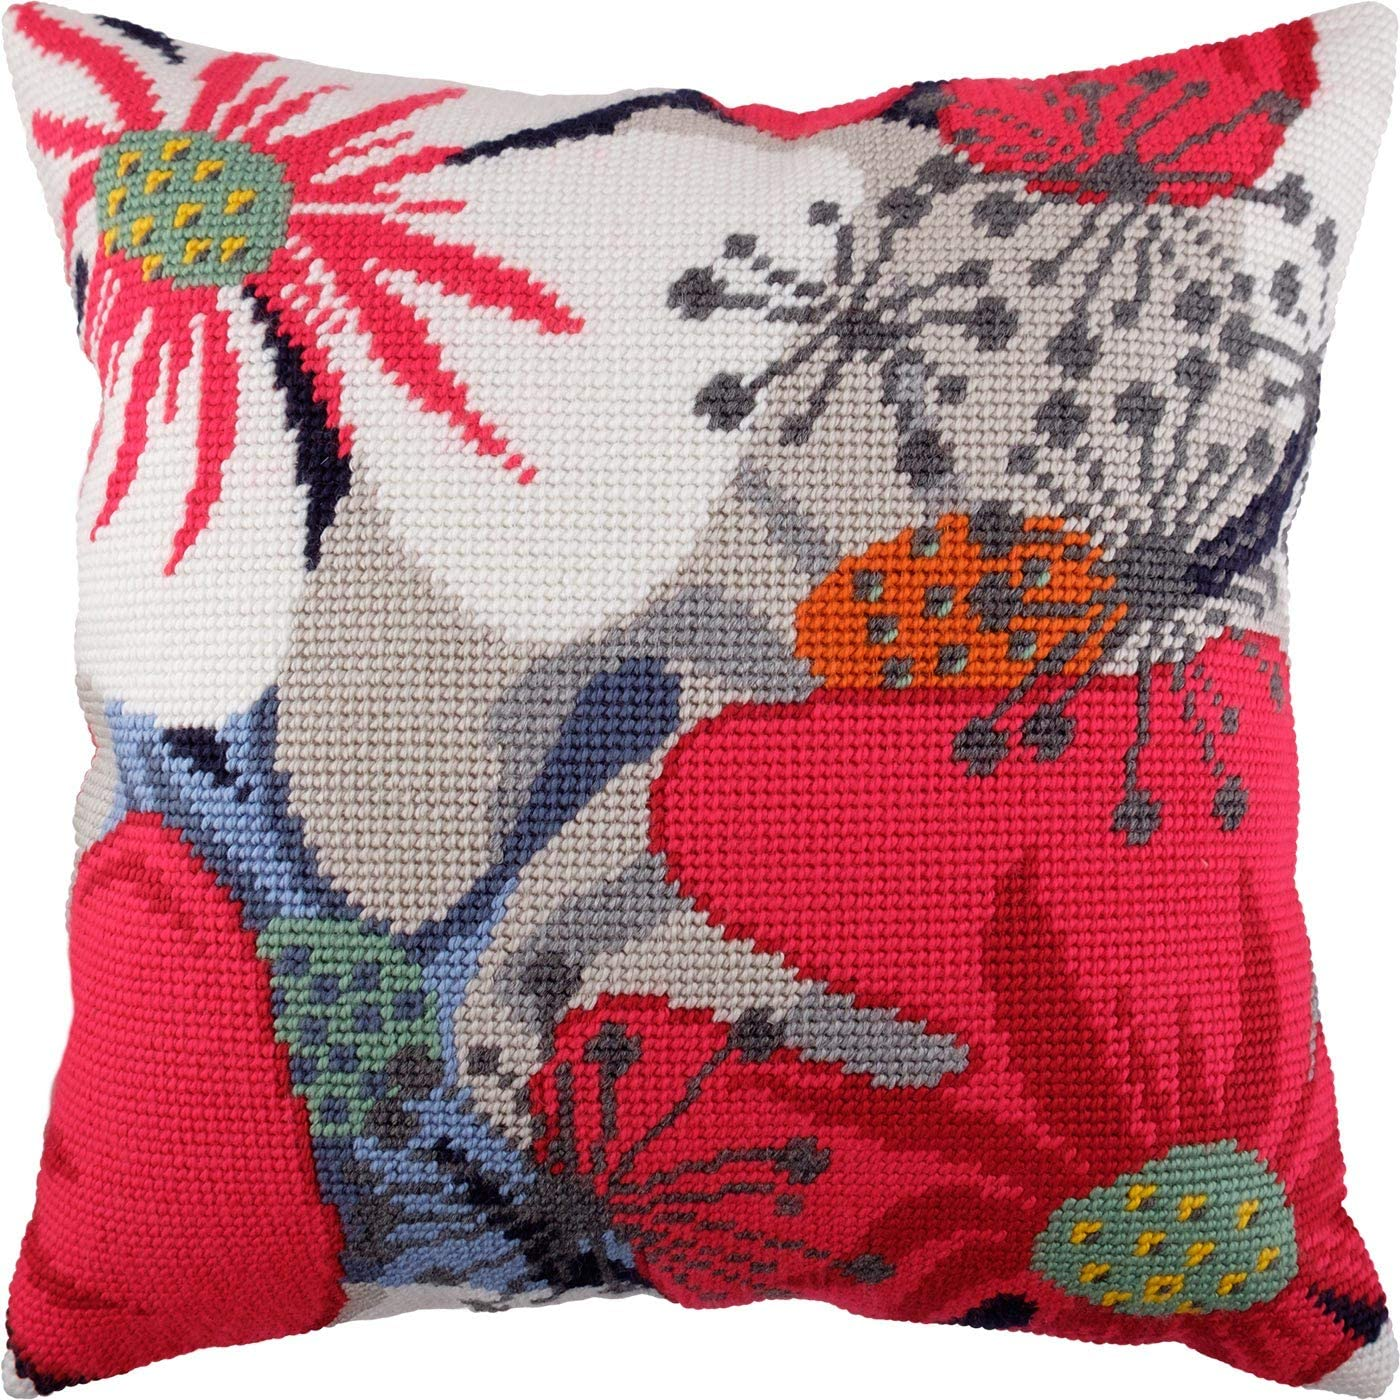 Throw Pillow Case 16/×16 Inches Floral Home Decor European Quality Flowerish Mood Flowers DIY Embroidery Needlepoint Cushion Cover Front Cross Stitch Kit Printed Tapestry Canvas